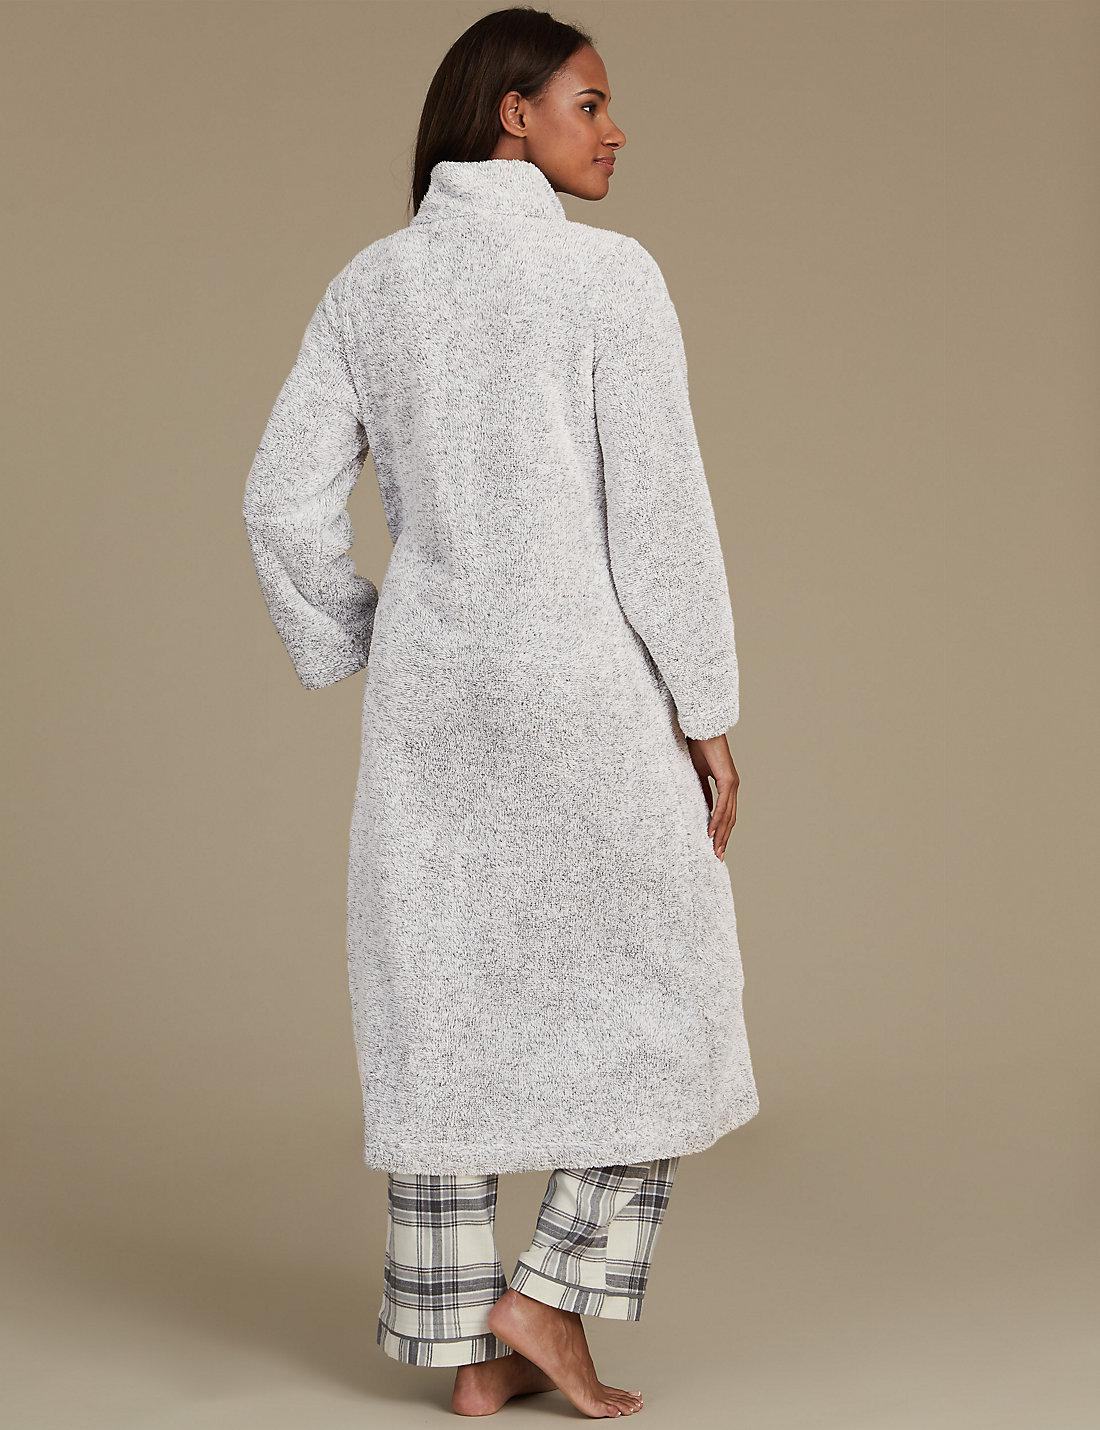 Marks & Spencer Long Sleeve Zip-up Dressing Gown in Gray - Lyst